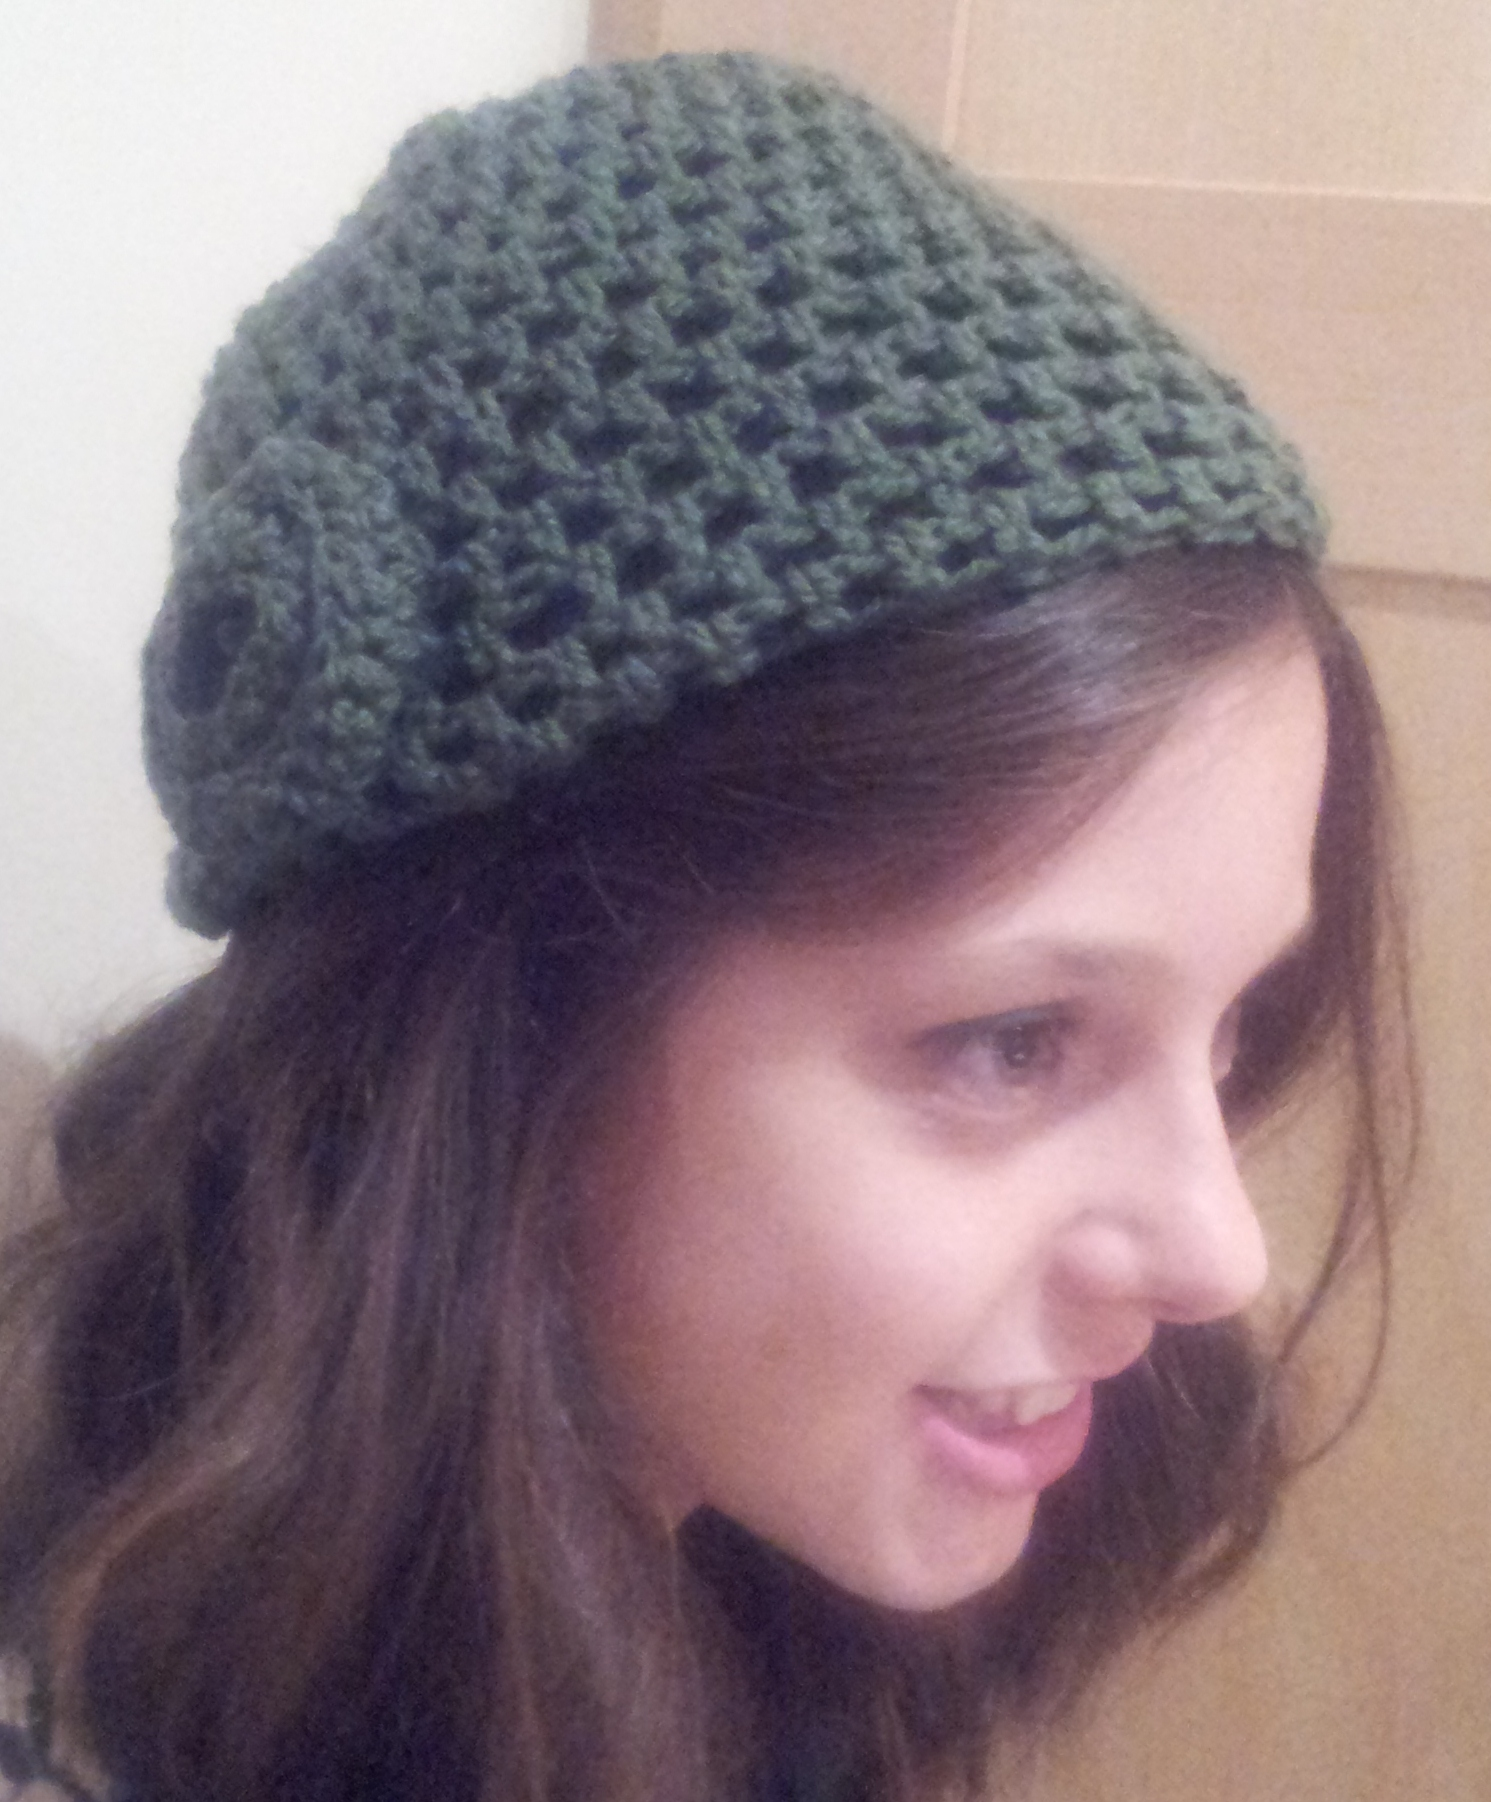 Crochet Hat Patterns Beanie : Free crochet beanie hat pattern thestitchsharer